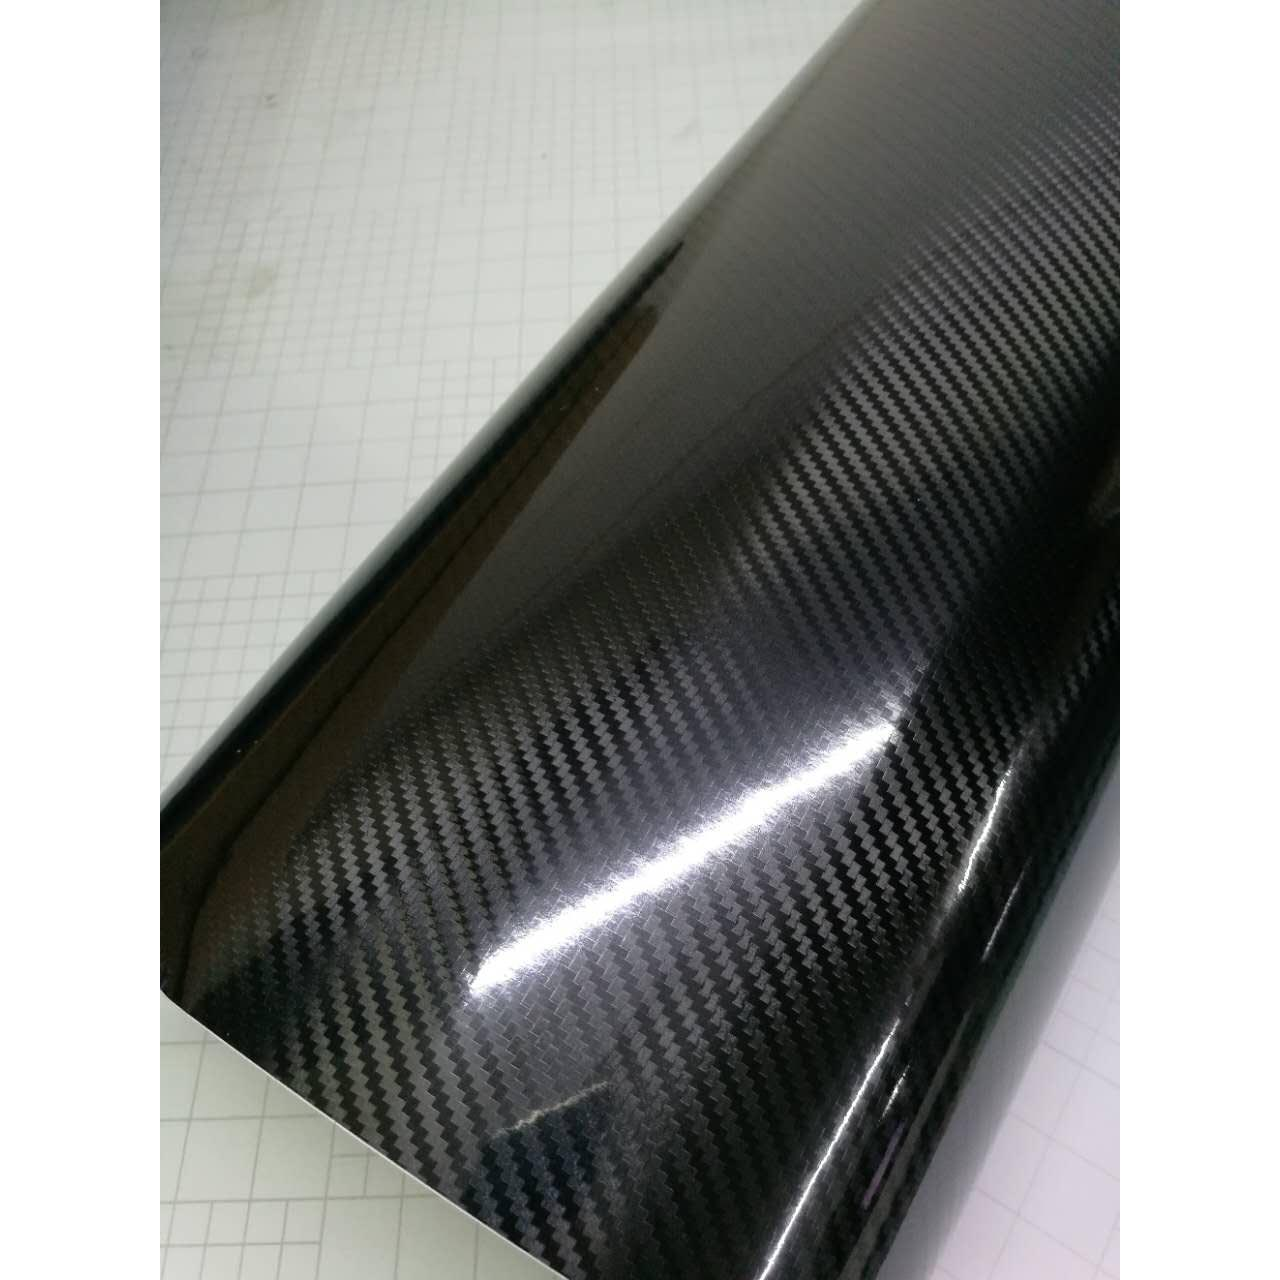 6d Black Shiny Gloss Glossy Carbon Fiber Film Wrap Vinyl